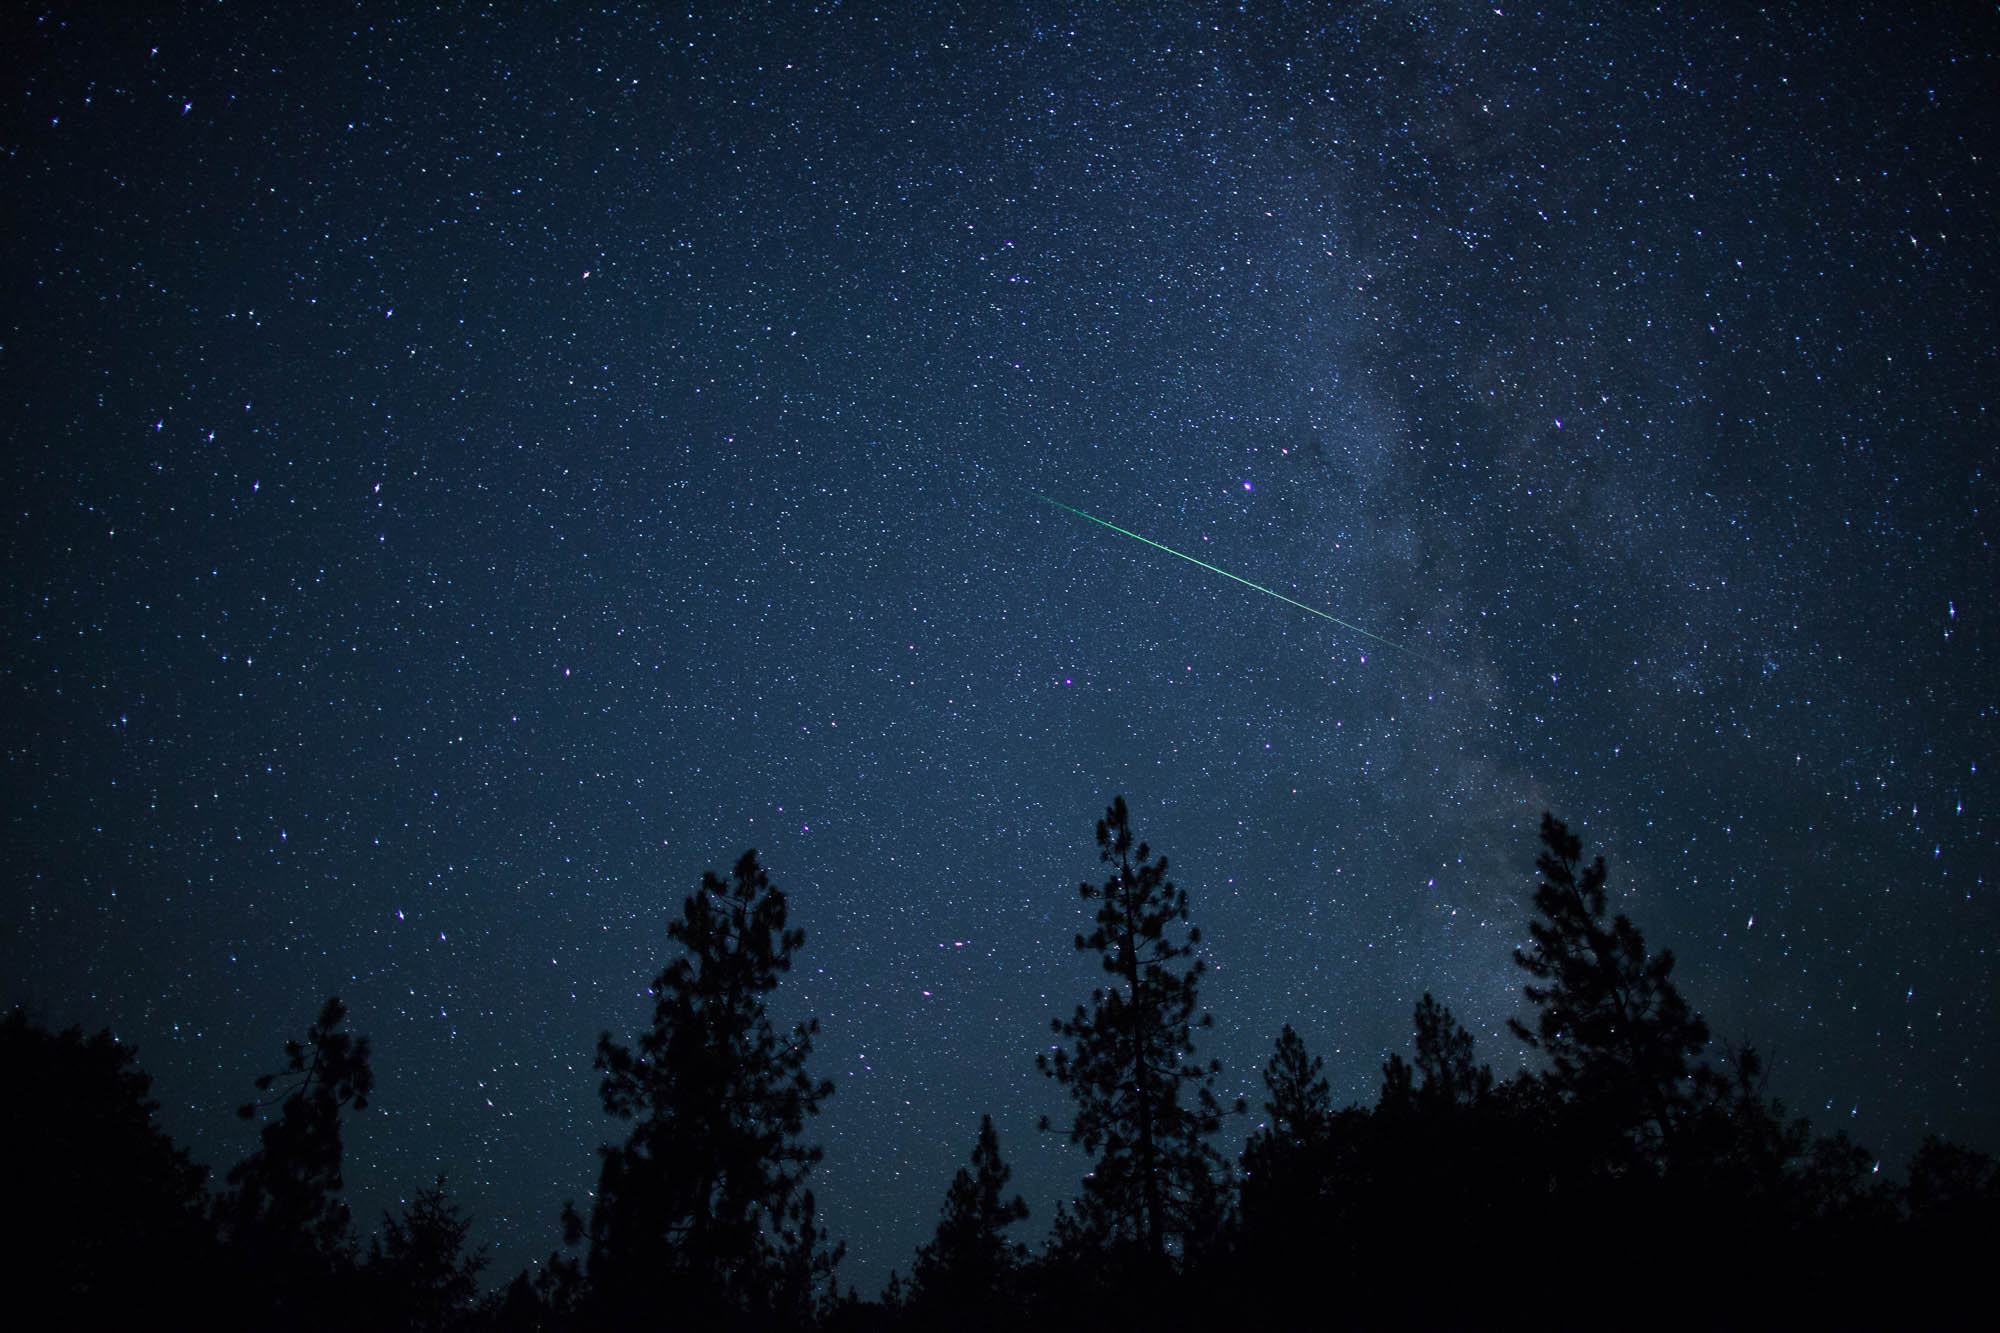 Delta Aquarid meteor with the Milky Way in this spectacular night sky shot, Oregon.